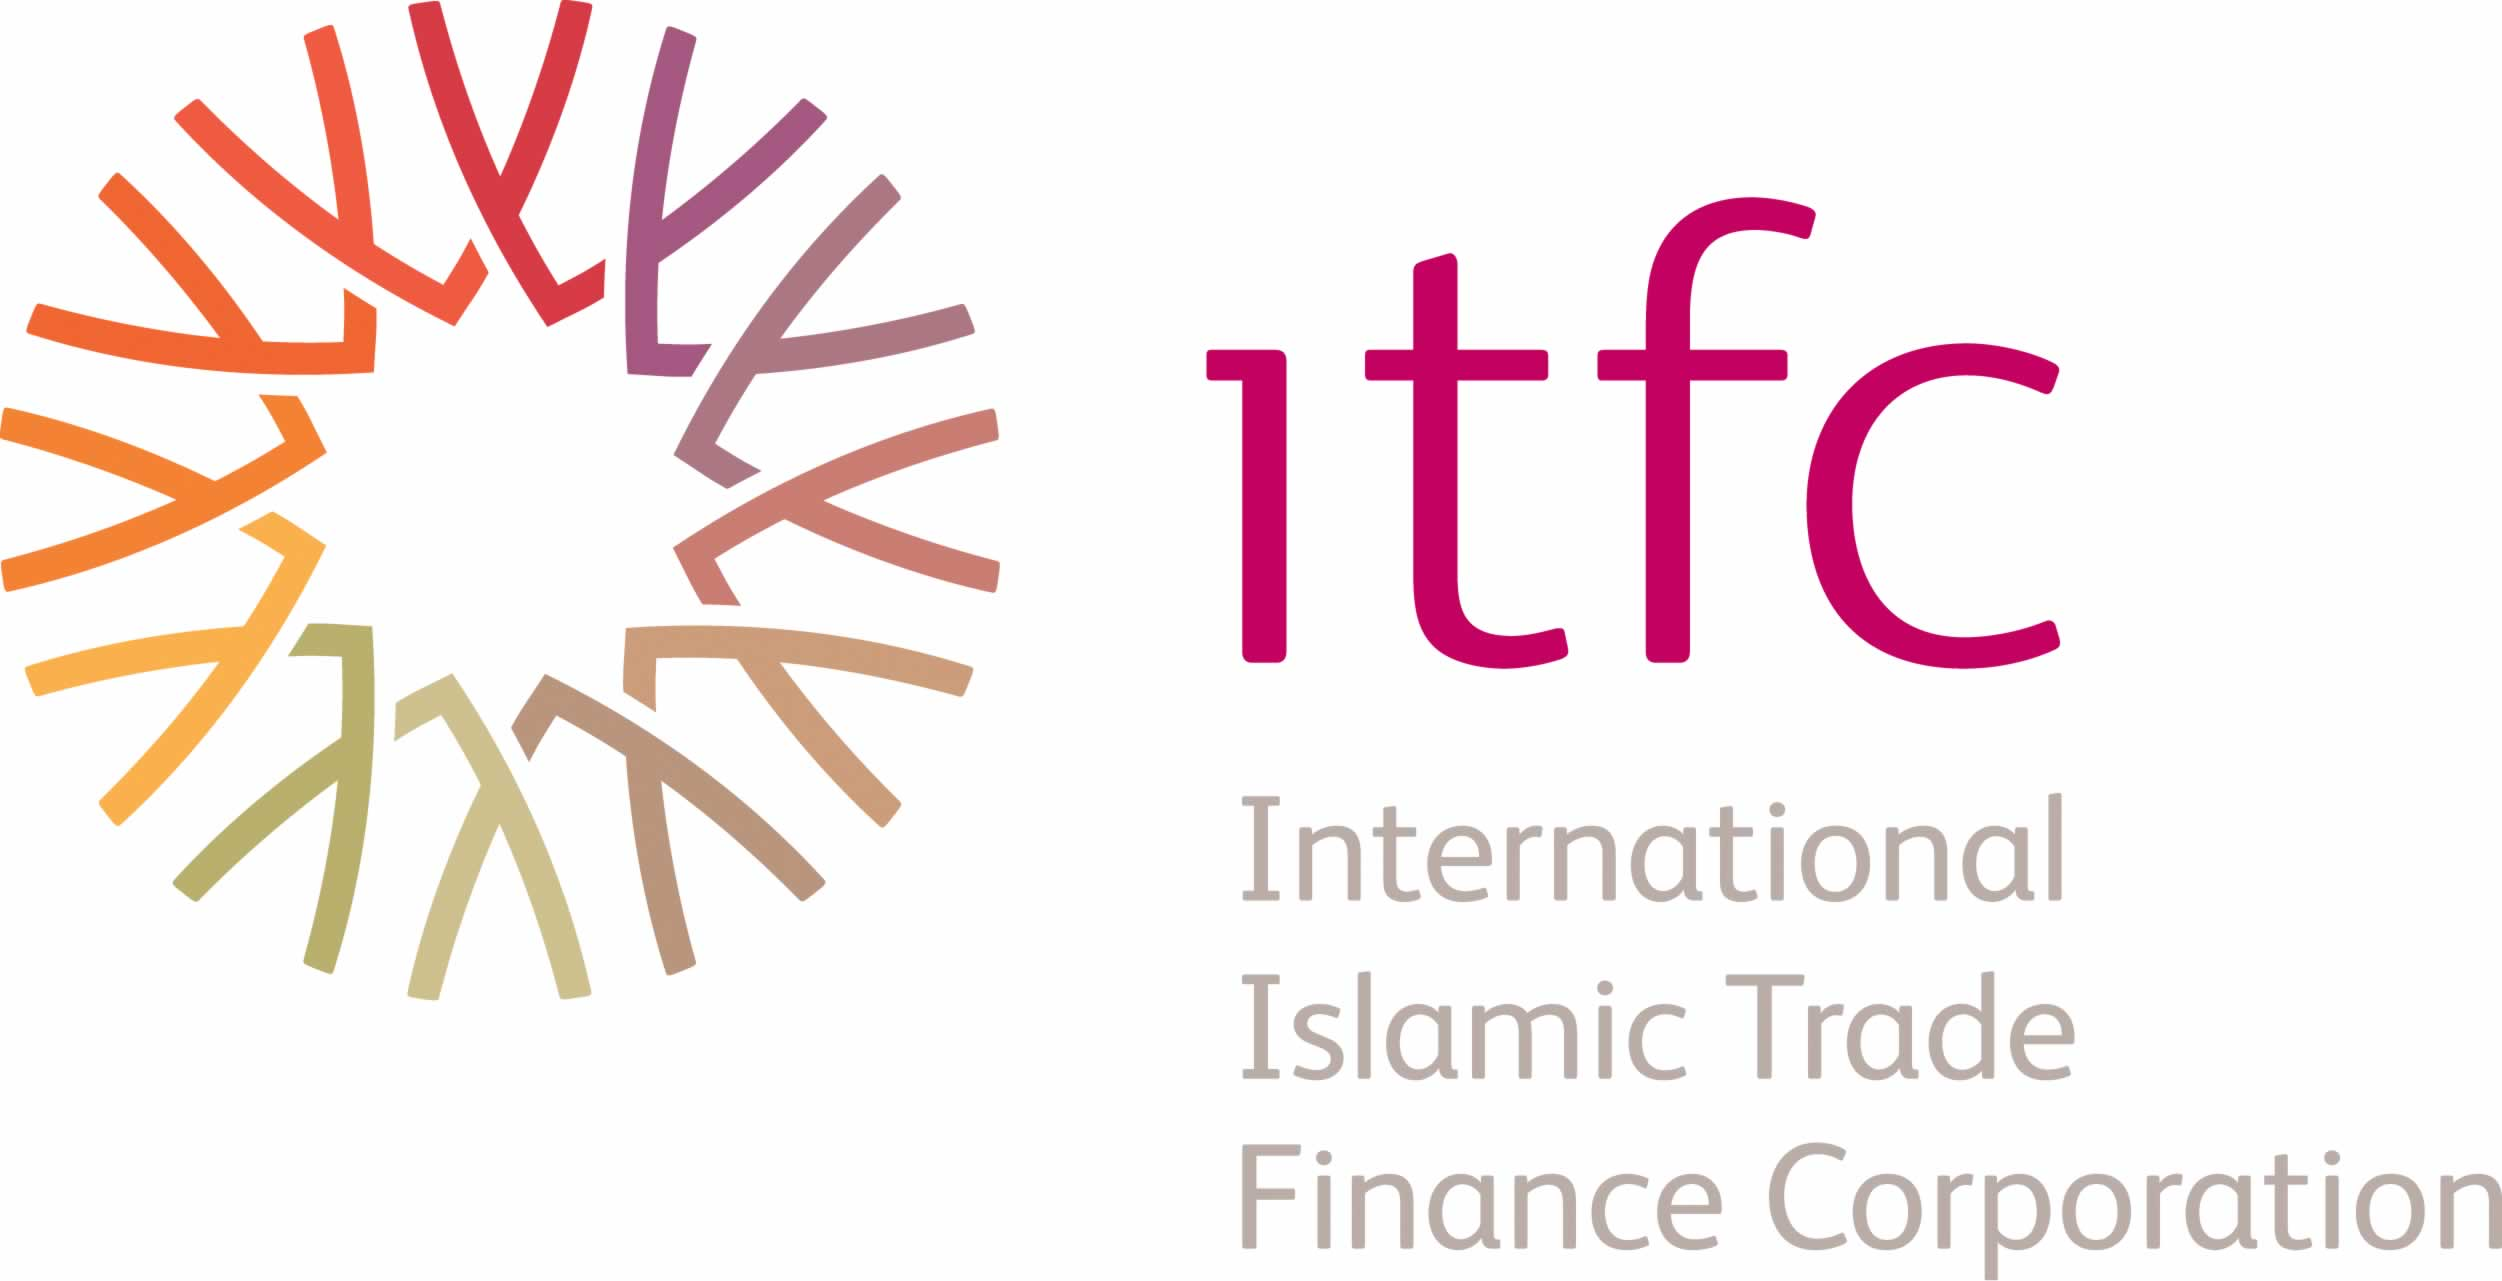 ITFC - International Islamic Trade Finance Corporation